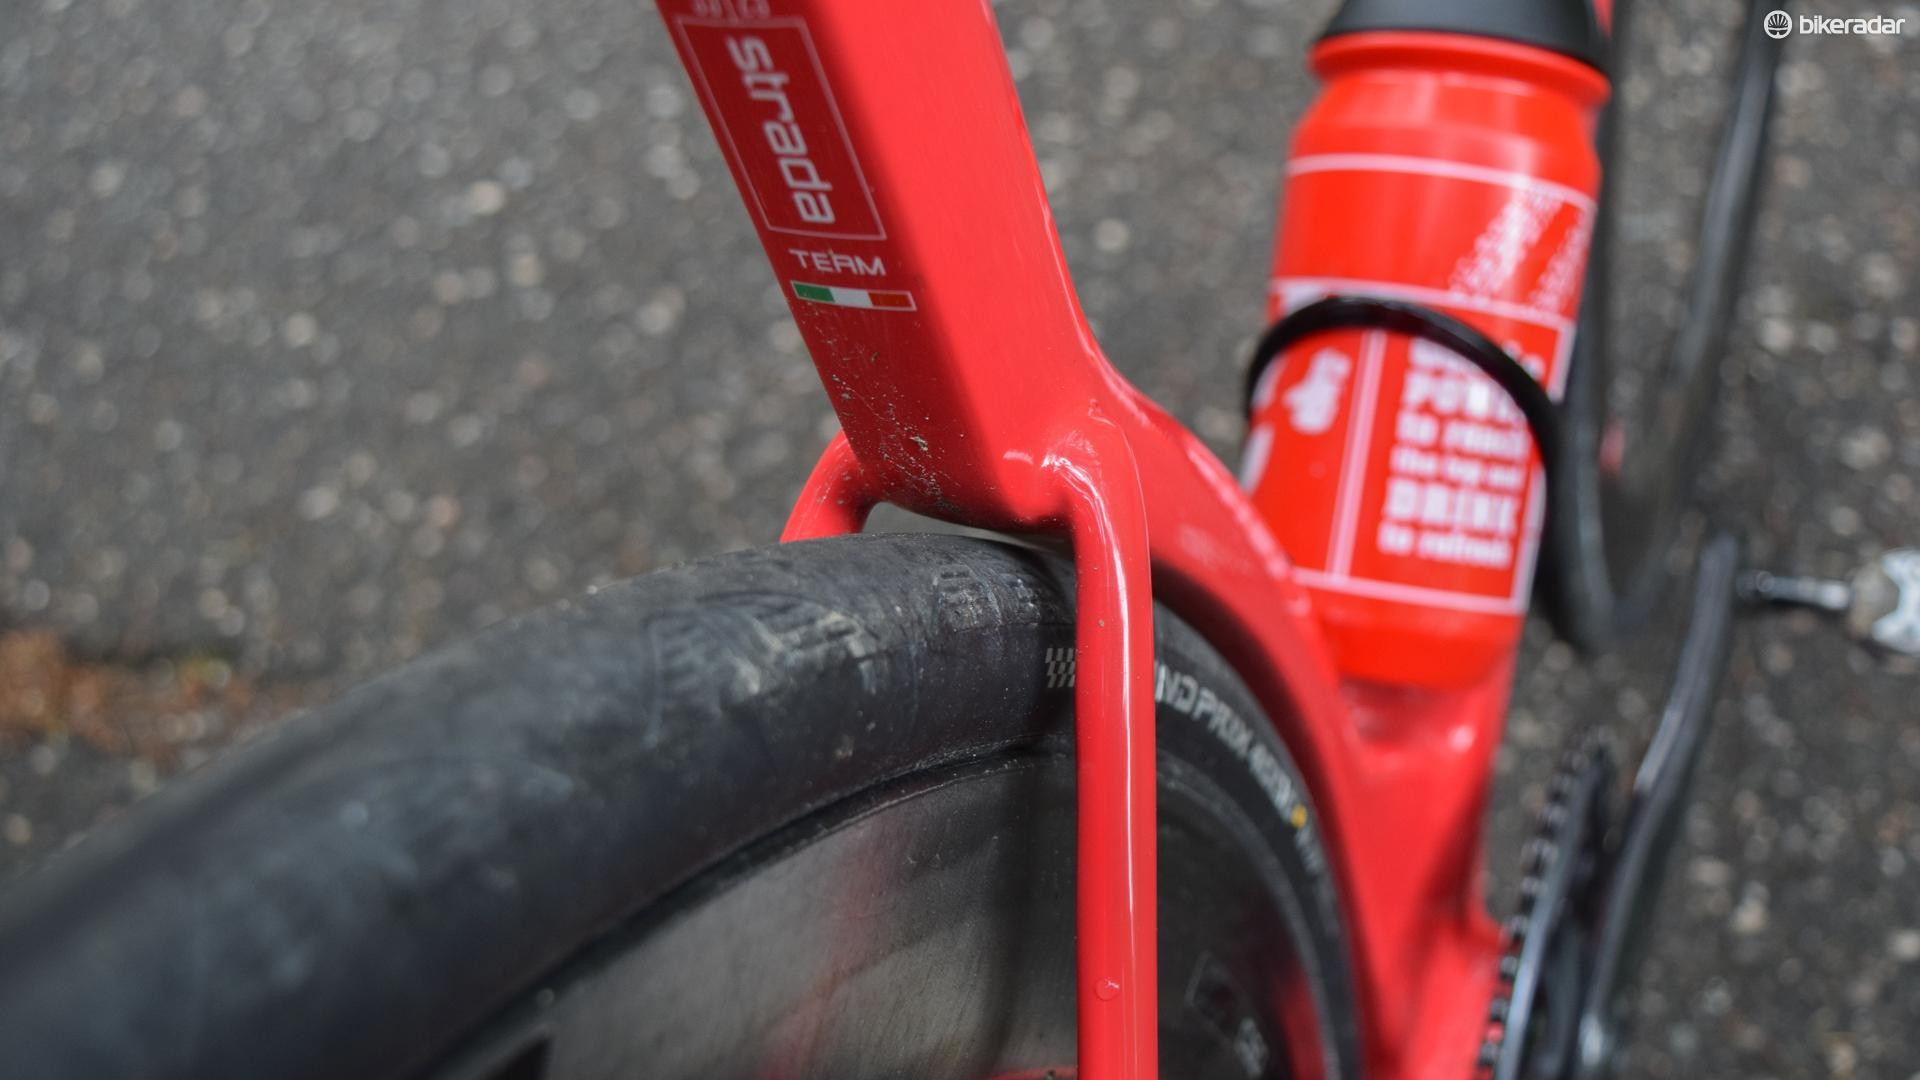 Have you hugged your tyre lately? Clearances with a fat 28mm tyre are tight